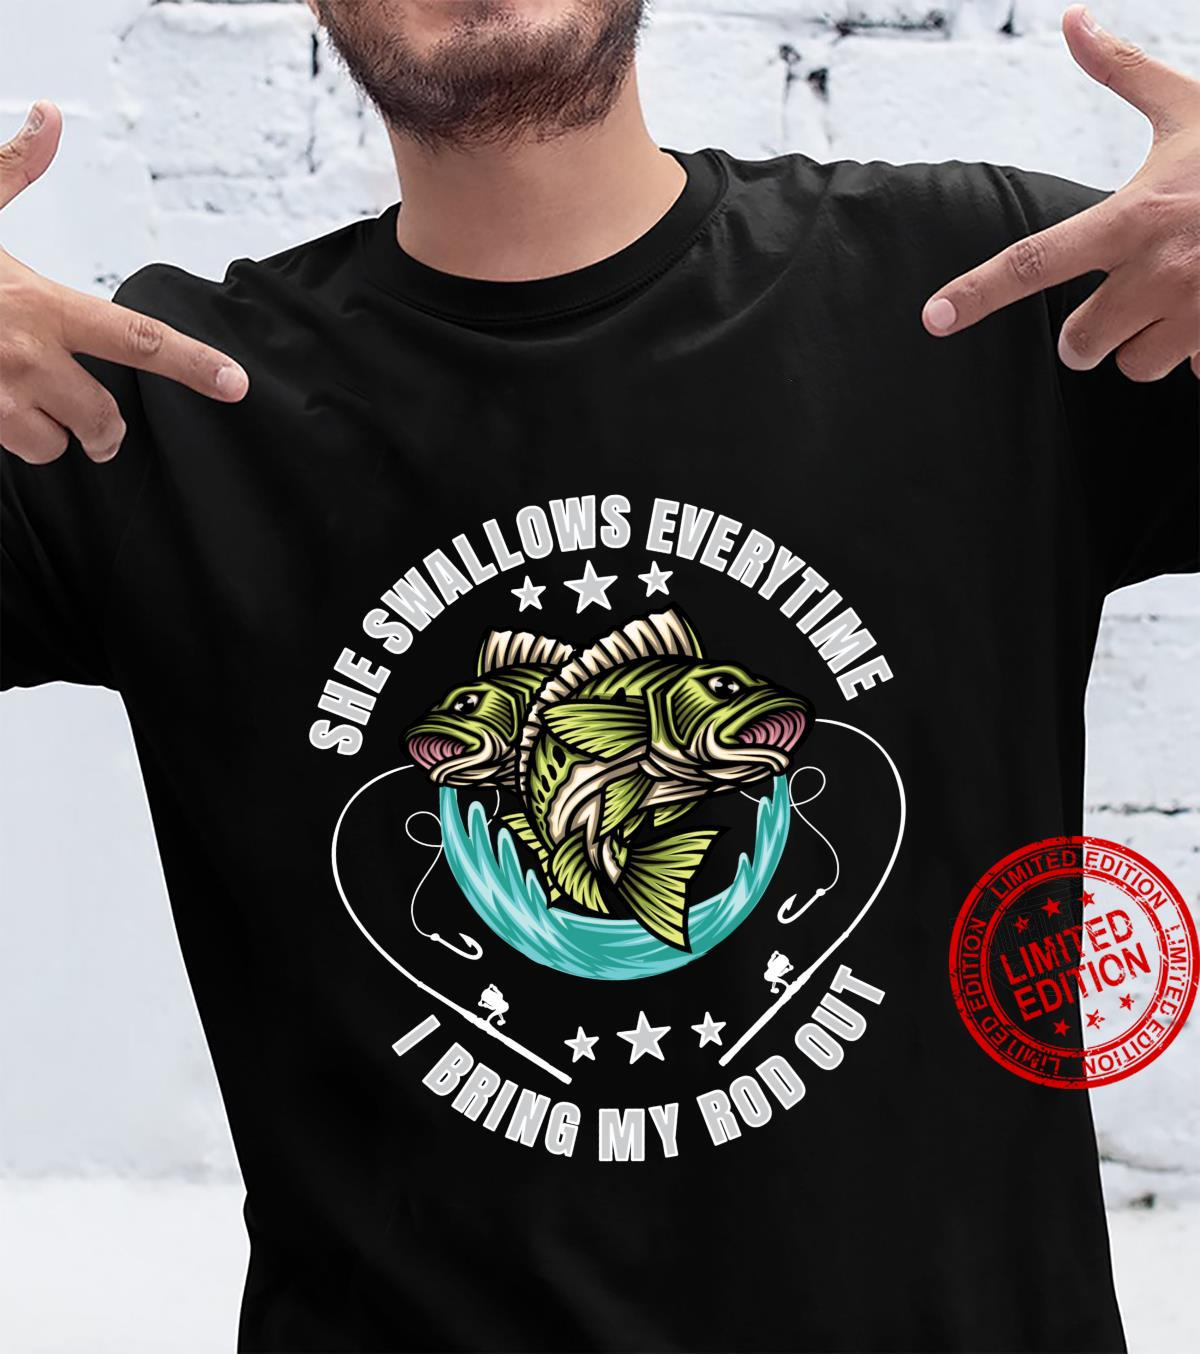 She swallows everytime I bring my rod out Fishing Fisherman Shirt